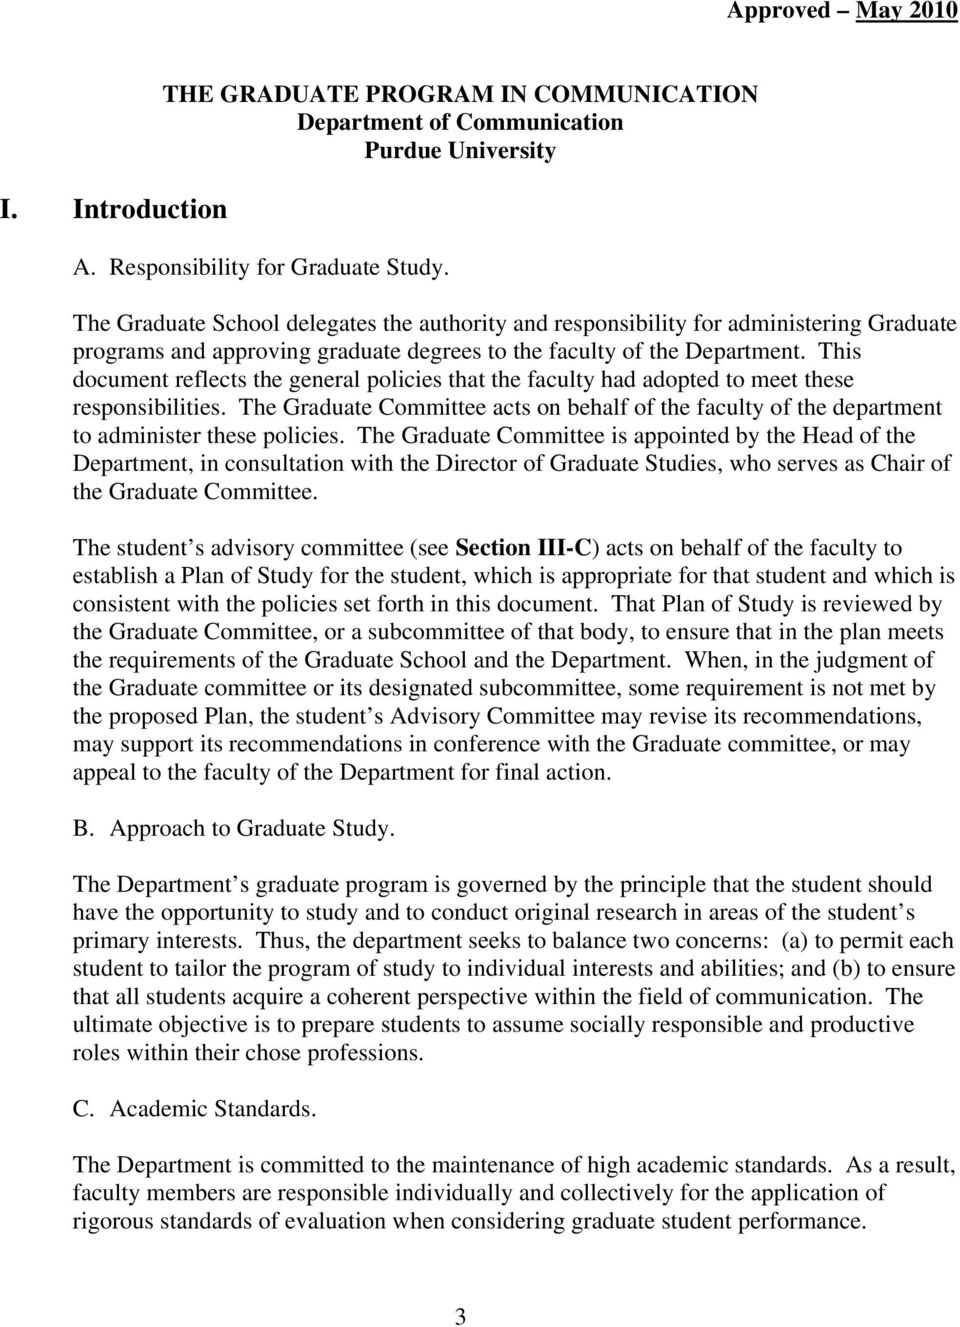 This document reflects the general policies that the faculty had adopted to meet these responsibilities.